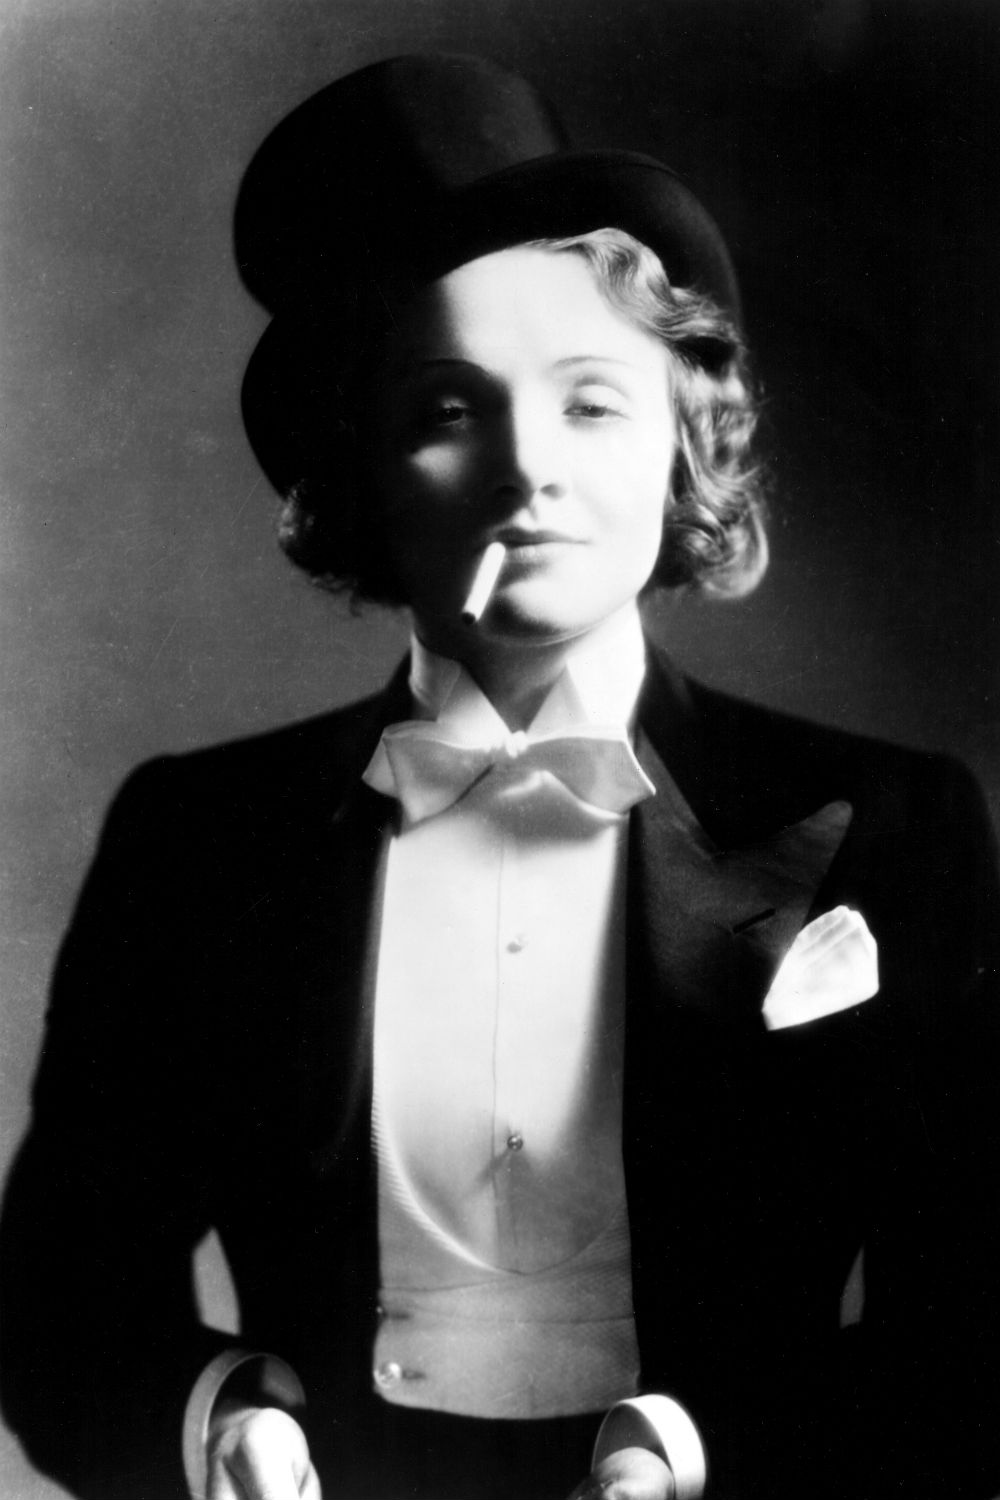 Marlene Dietrich 1930s fashion icons